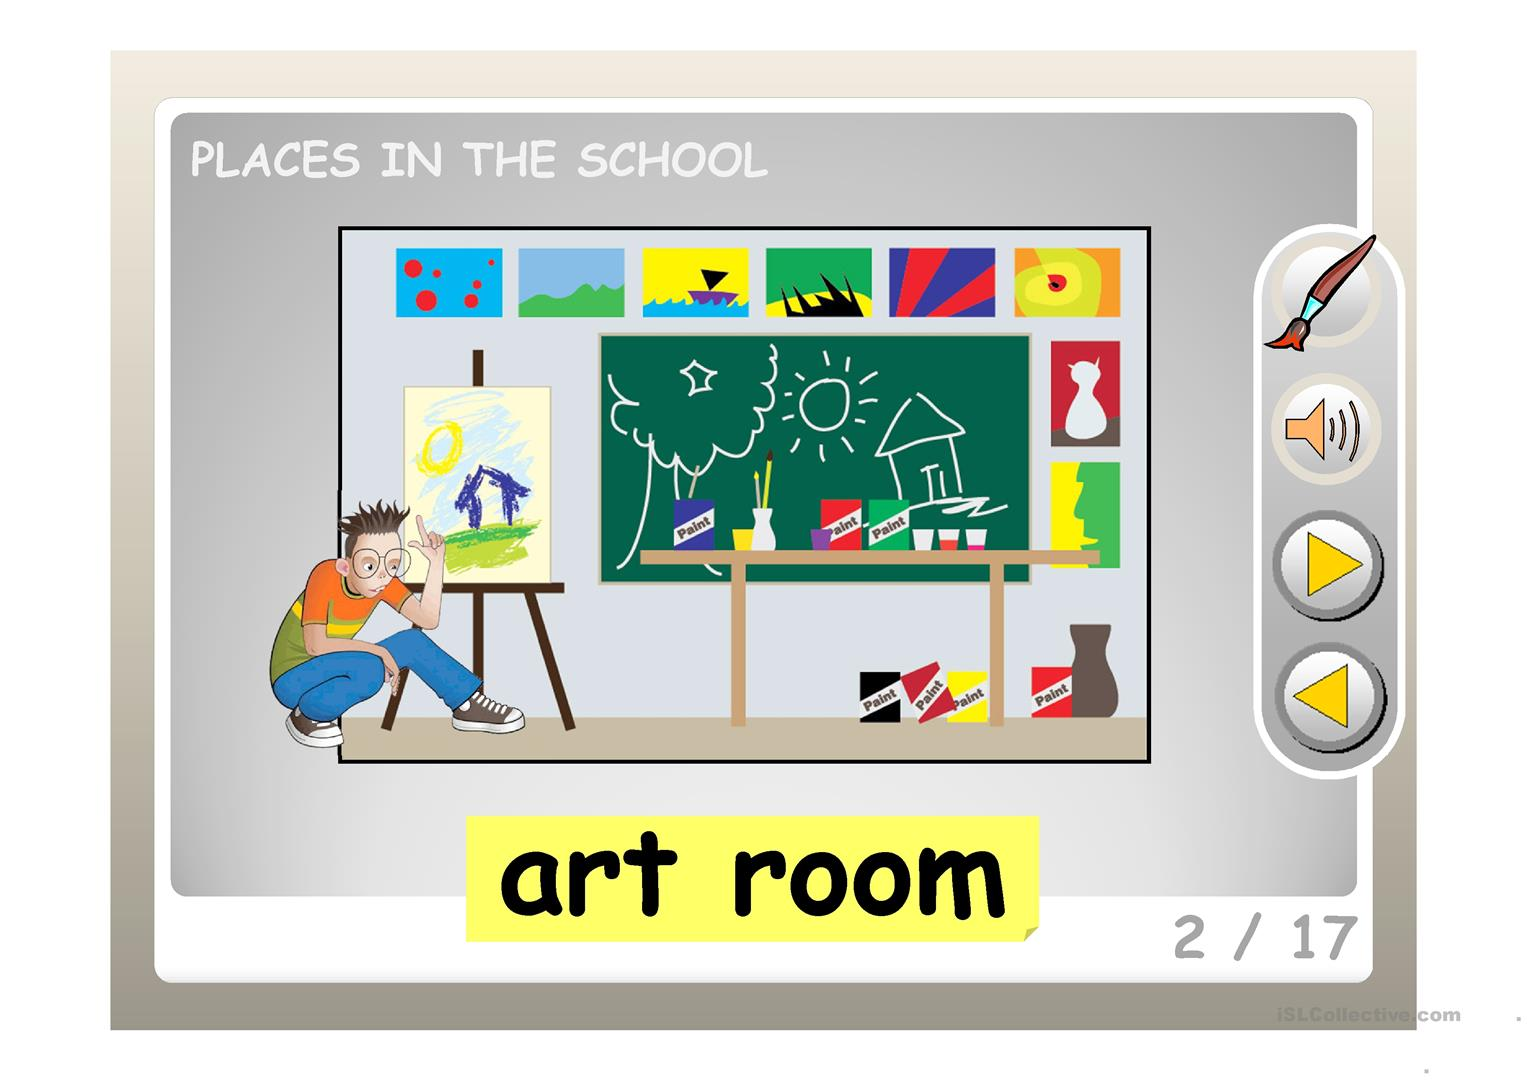 PLACES IN THE SCHOOL PPT.